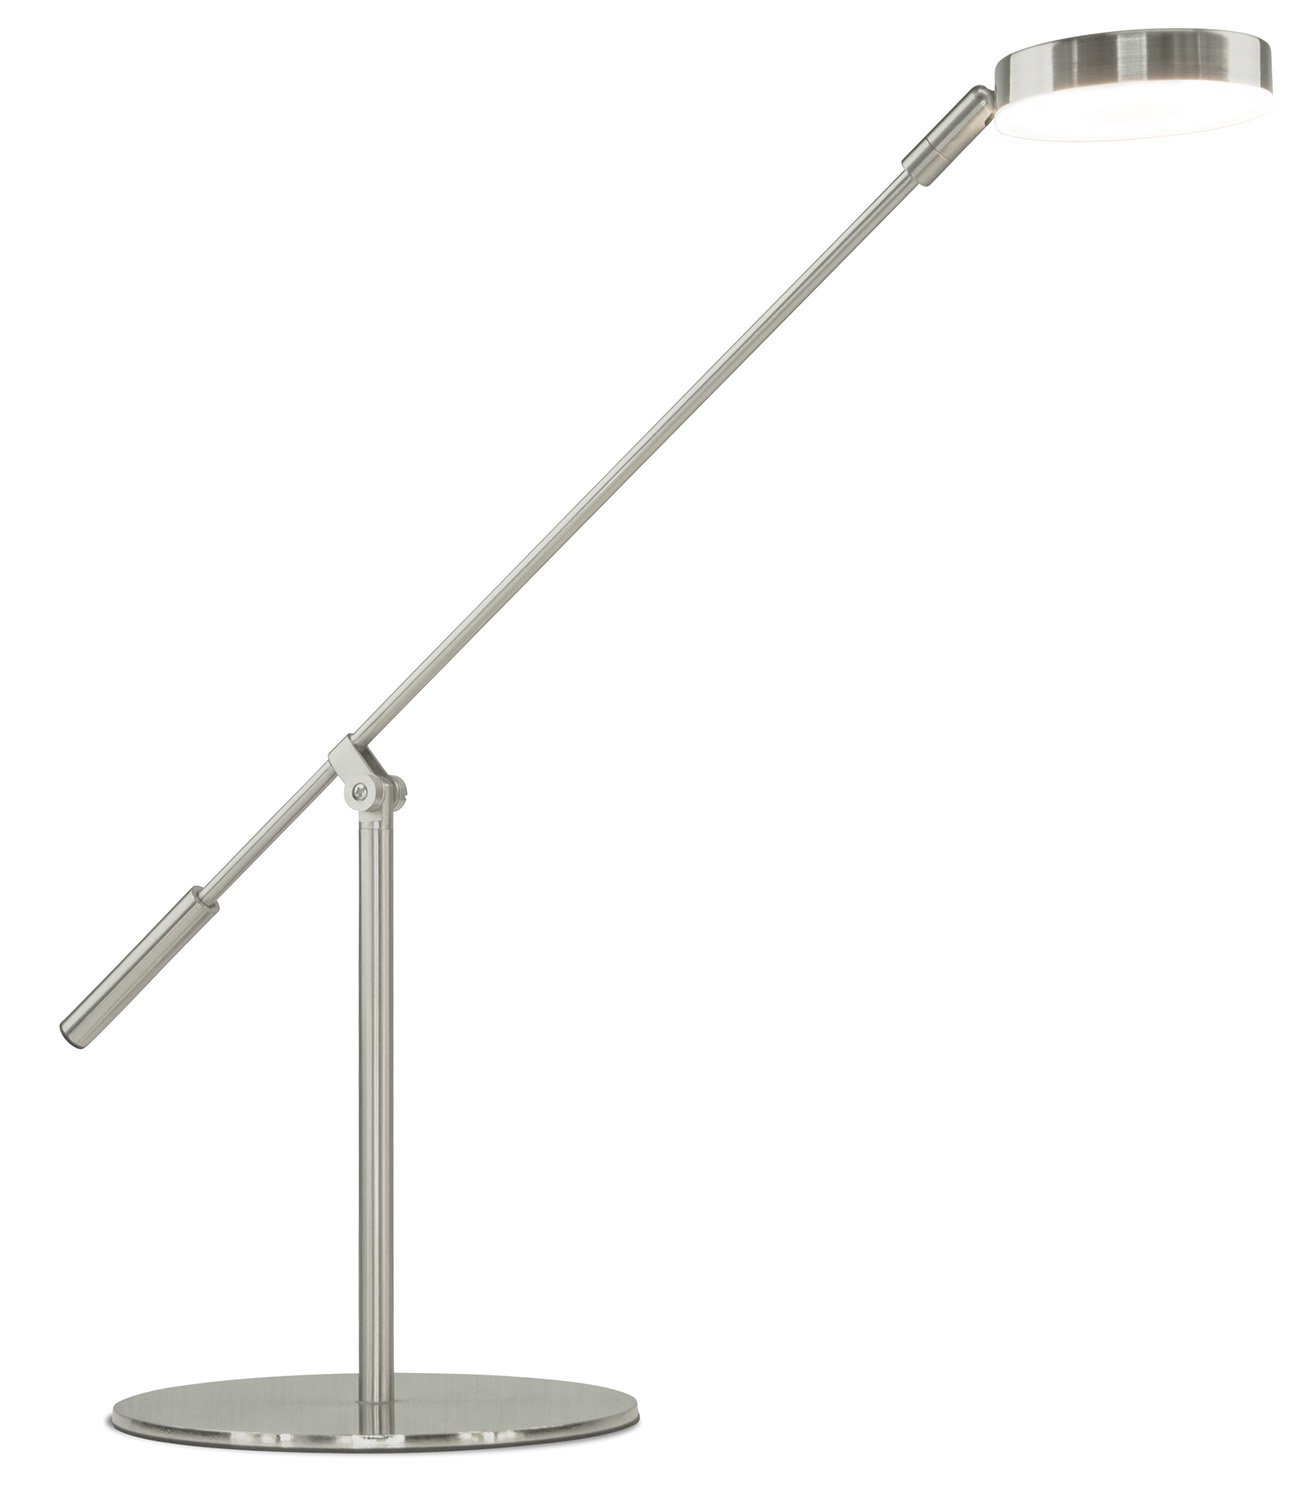 Turcom LED Desk Lamp, Energy-Efficient, Non-Flickering for Reading, Adjustable Neck, Touch-Sensitive Control Panel, 450 Lumen